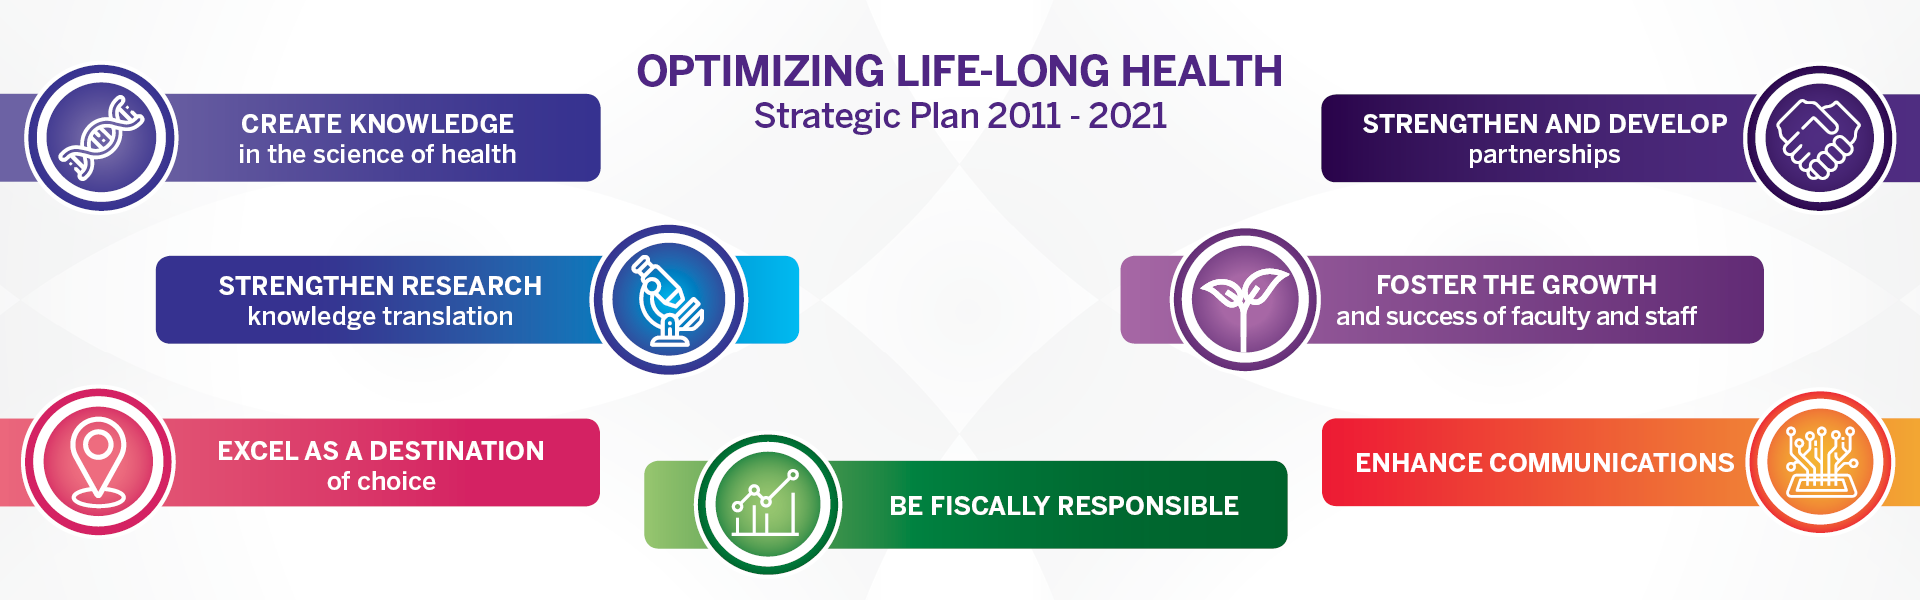 Schulich Medicine & Dentistry Strategic Plan 2011 - 2021